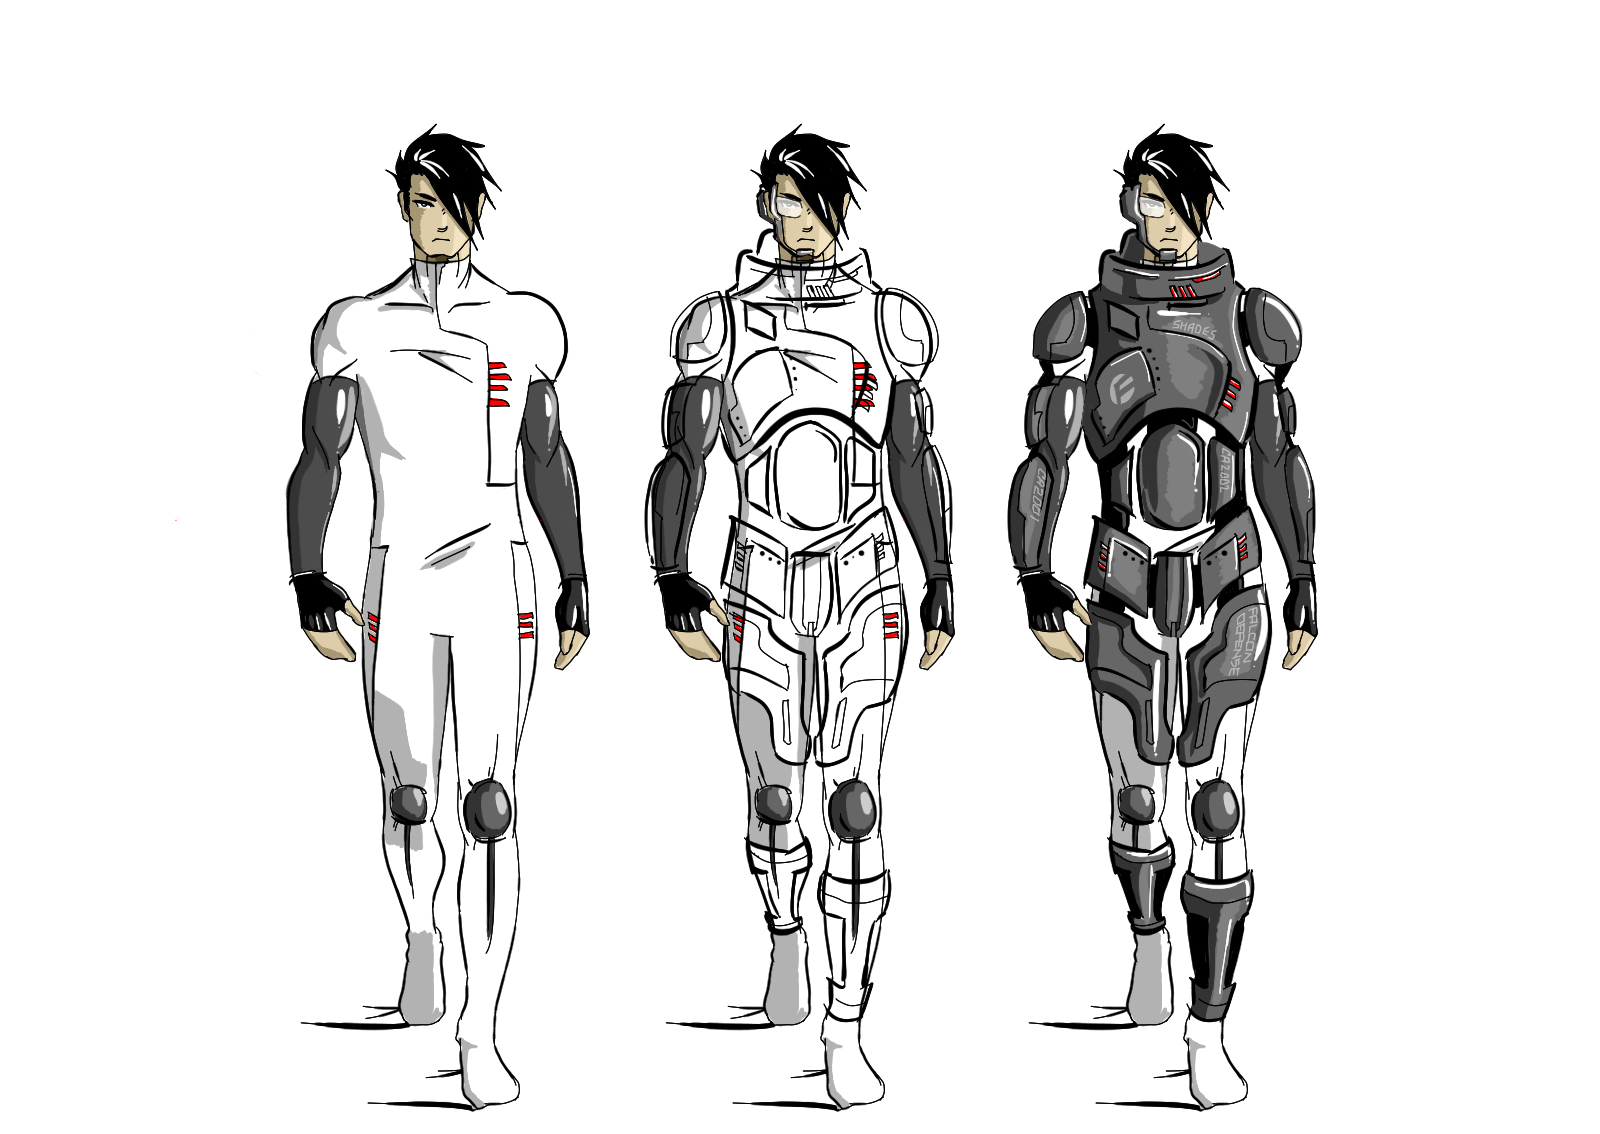 shades___falcon_defense_character_design_by_elementseven7-d62udb4.jpg